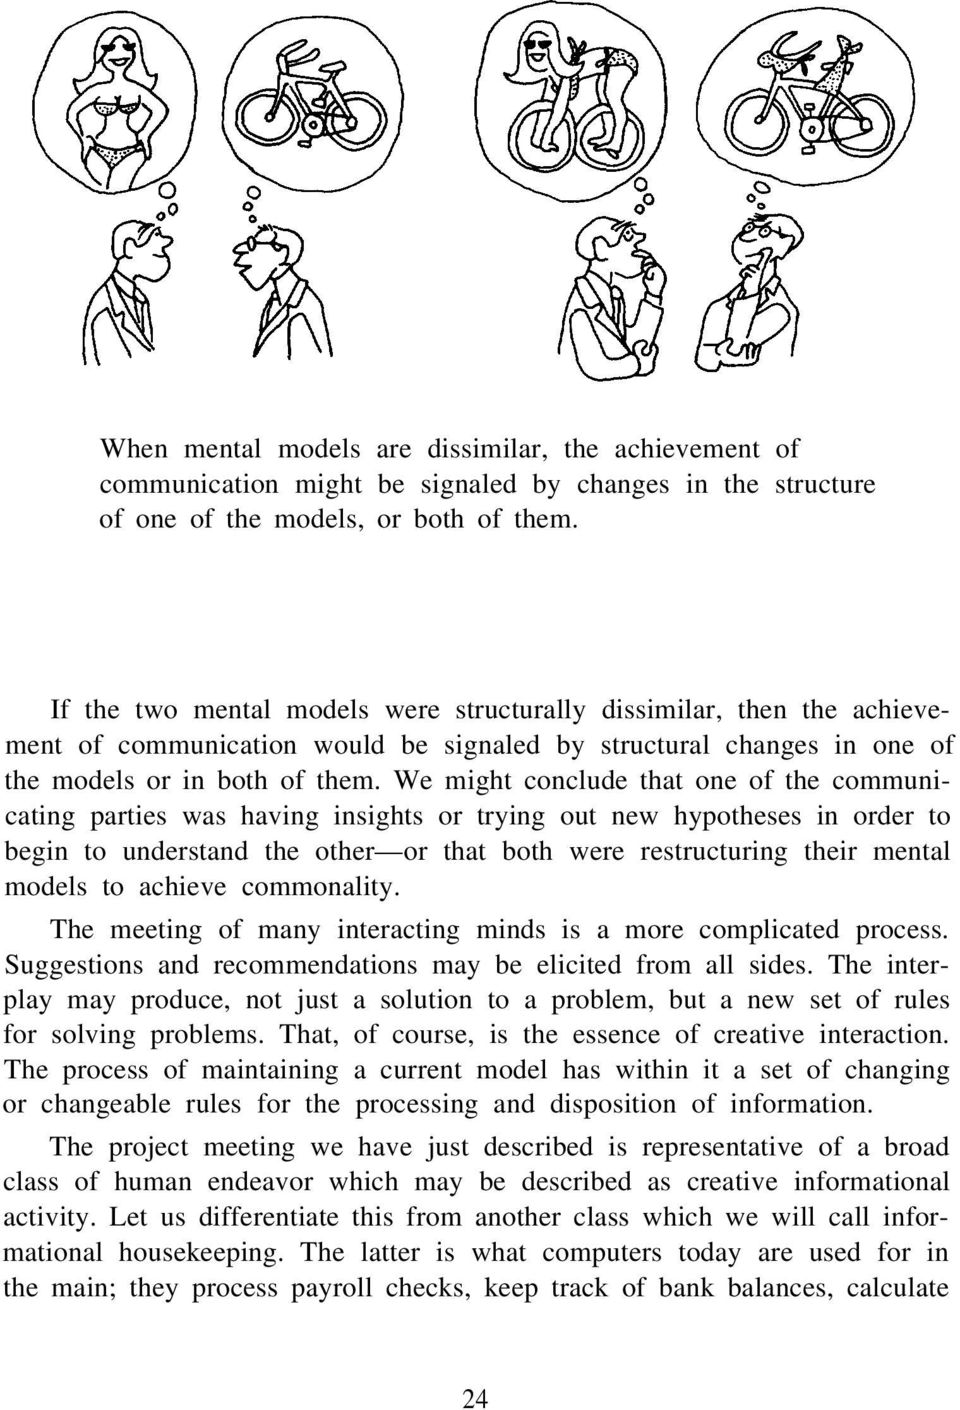 We might conclude that one of the communicating parties was having insights or trying out new hypotheses in order to begin to understand the other or that both were restructuring their mental models